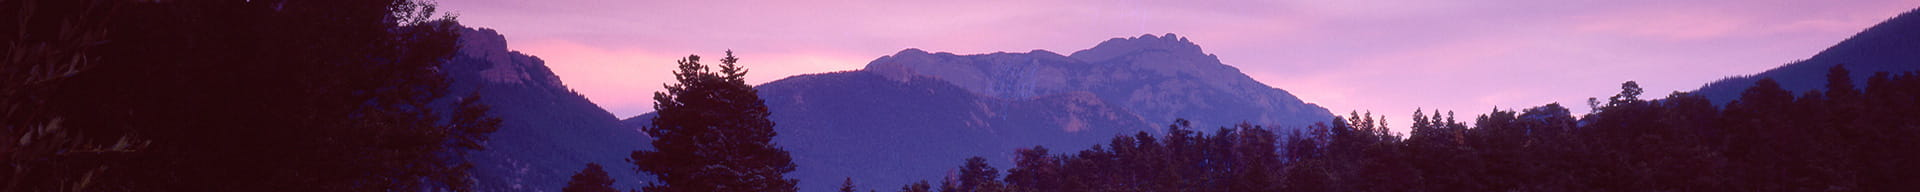 purple-Colorado-mountains